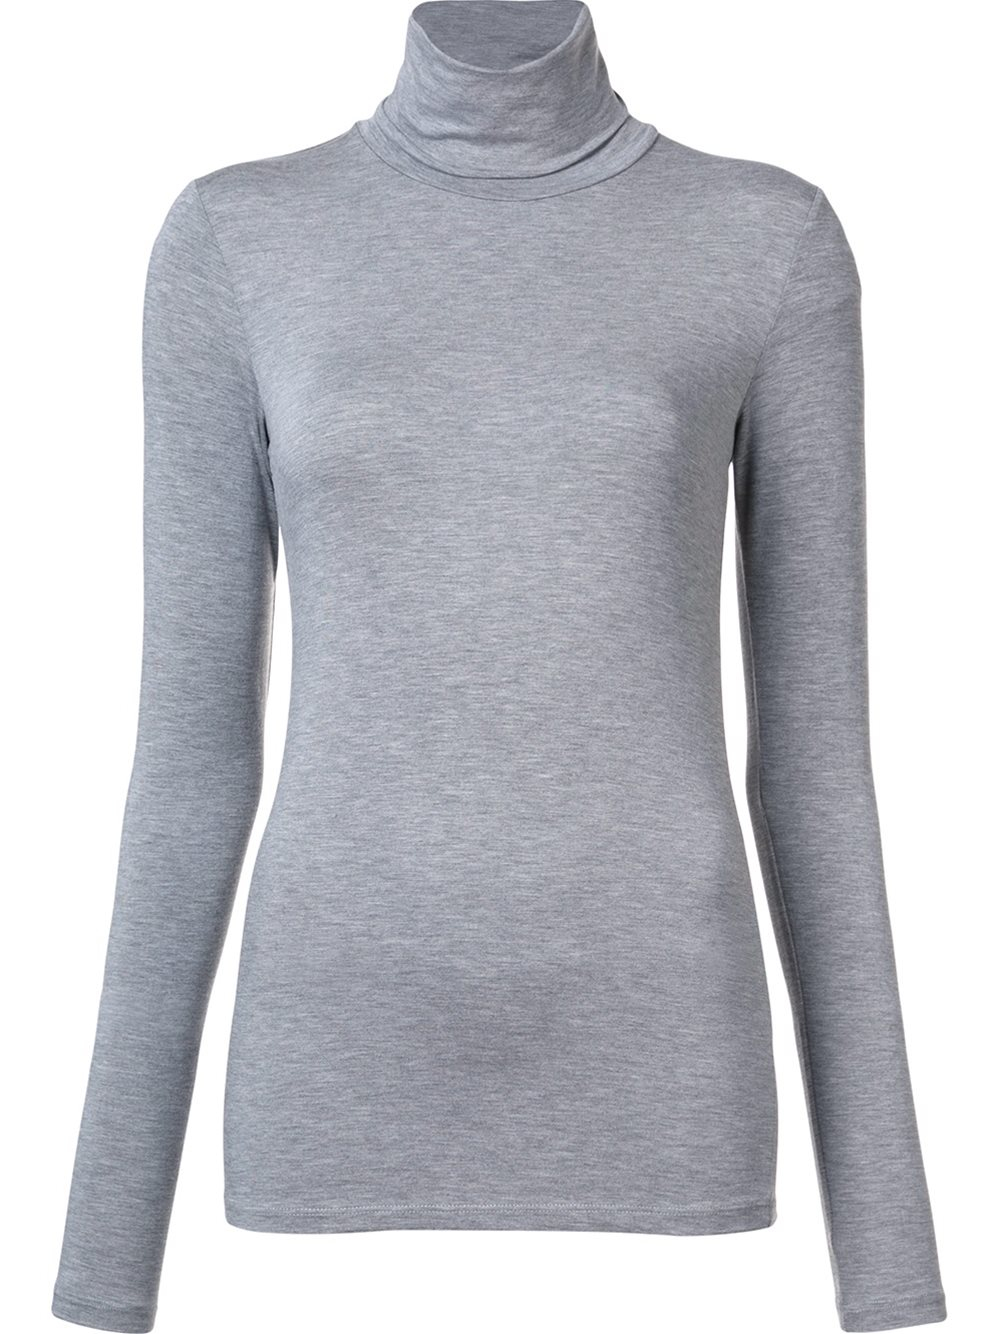 Majestic filatures high neck longsleeved t shirt in grey for High neck tee shirts